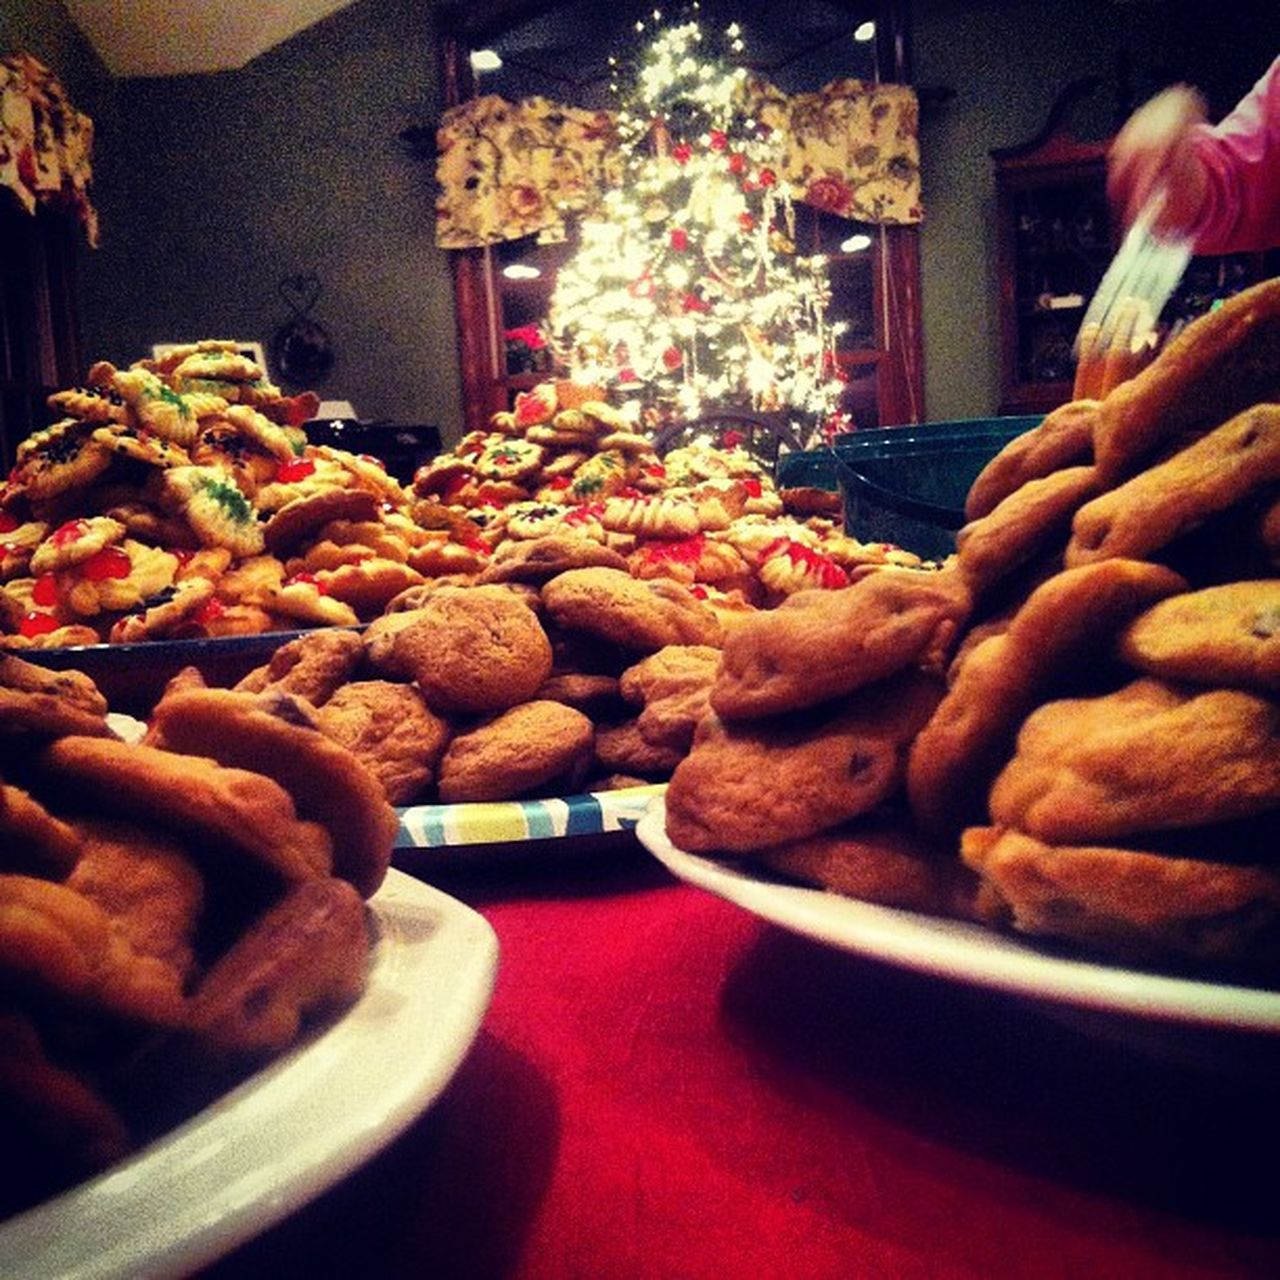 Cookies Cookiemountains Christmastime Christmastree chocolatechipcookies lights familytime love photo photography instagood